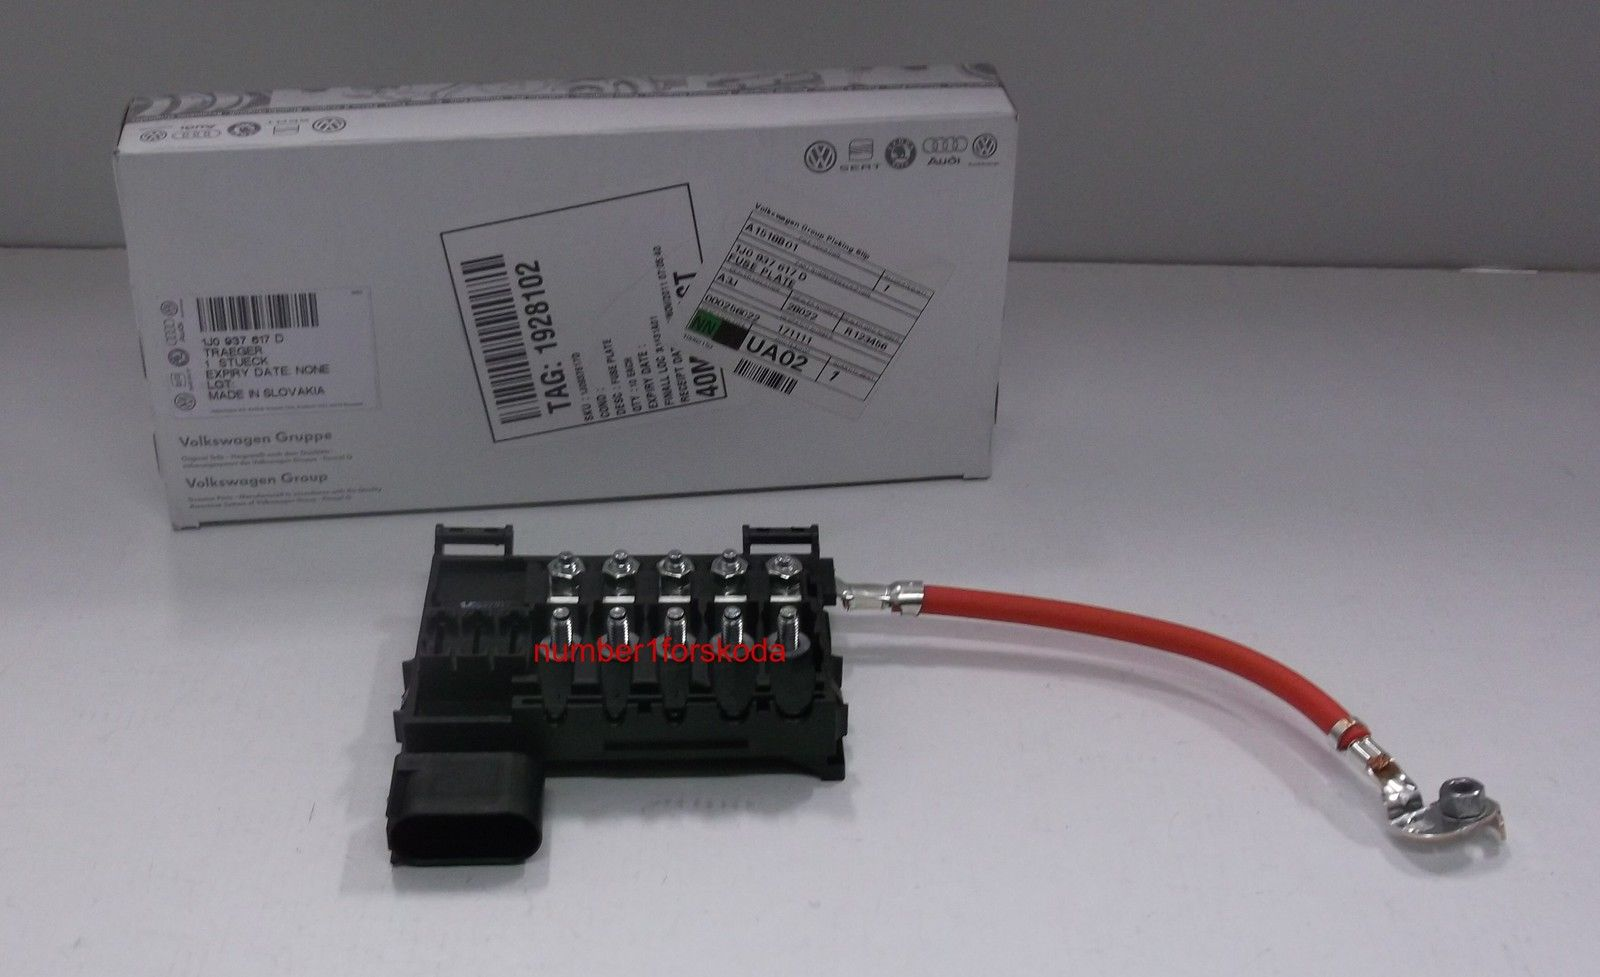 724D4458534D5C5C6D63486B4C49C691 genuine vw volkswagen battery fuse box 1j0937617d ebay vw jetta battery fuse box at crackthecode.co